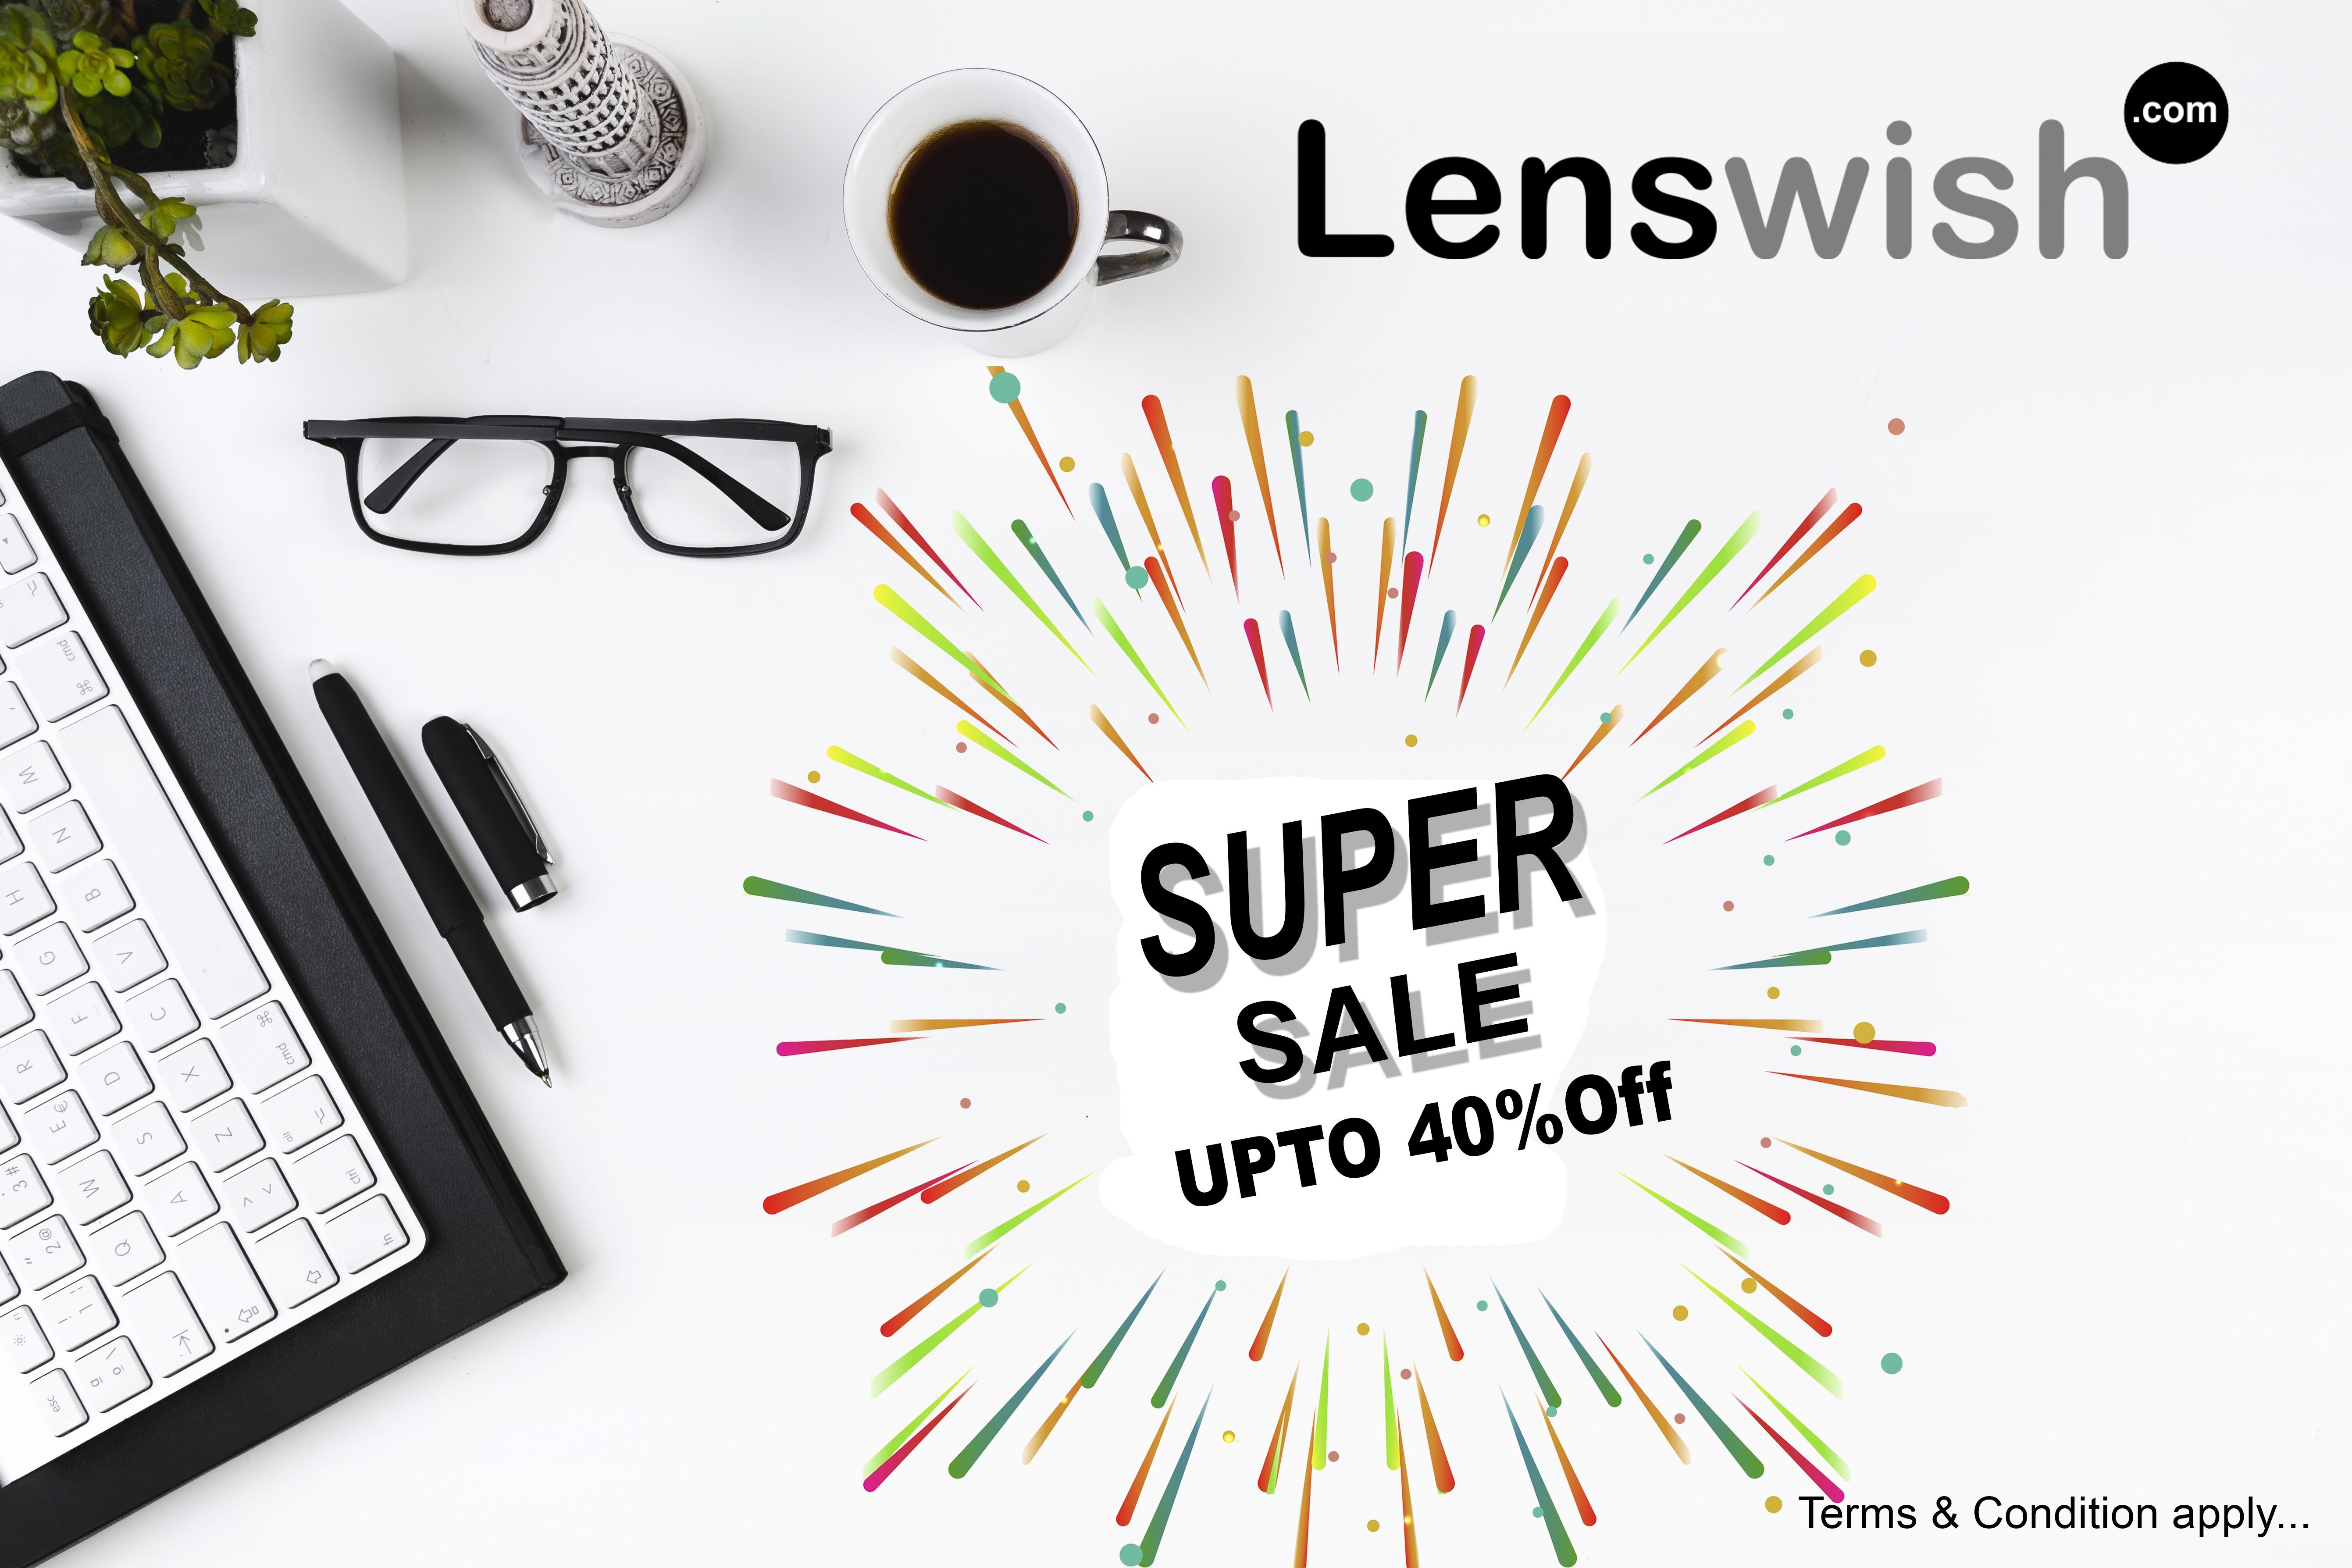 Pin by Lenswish on Lenswish Super sale, How to apply